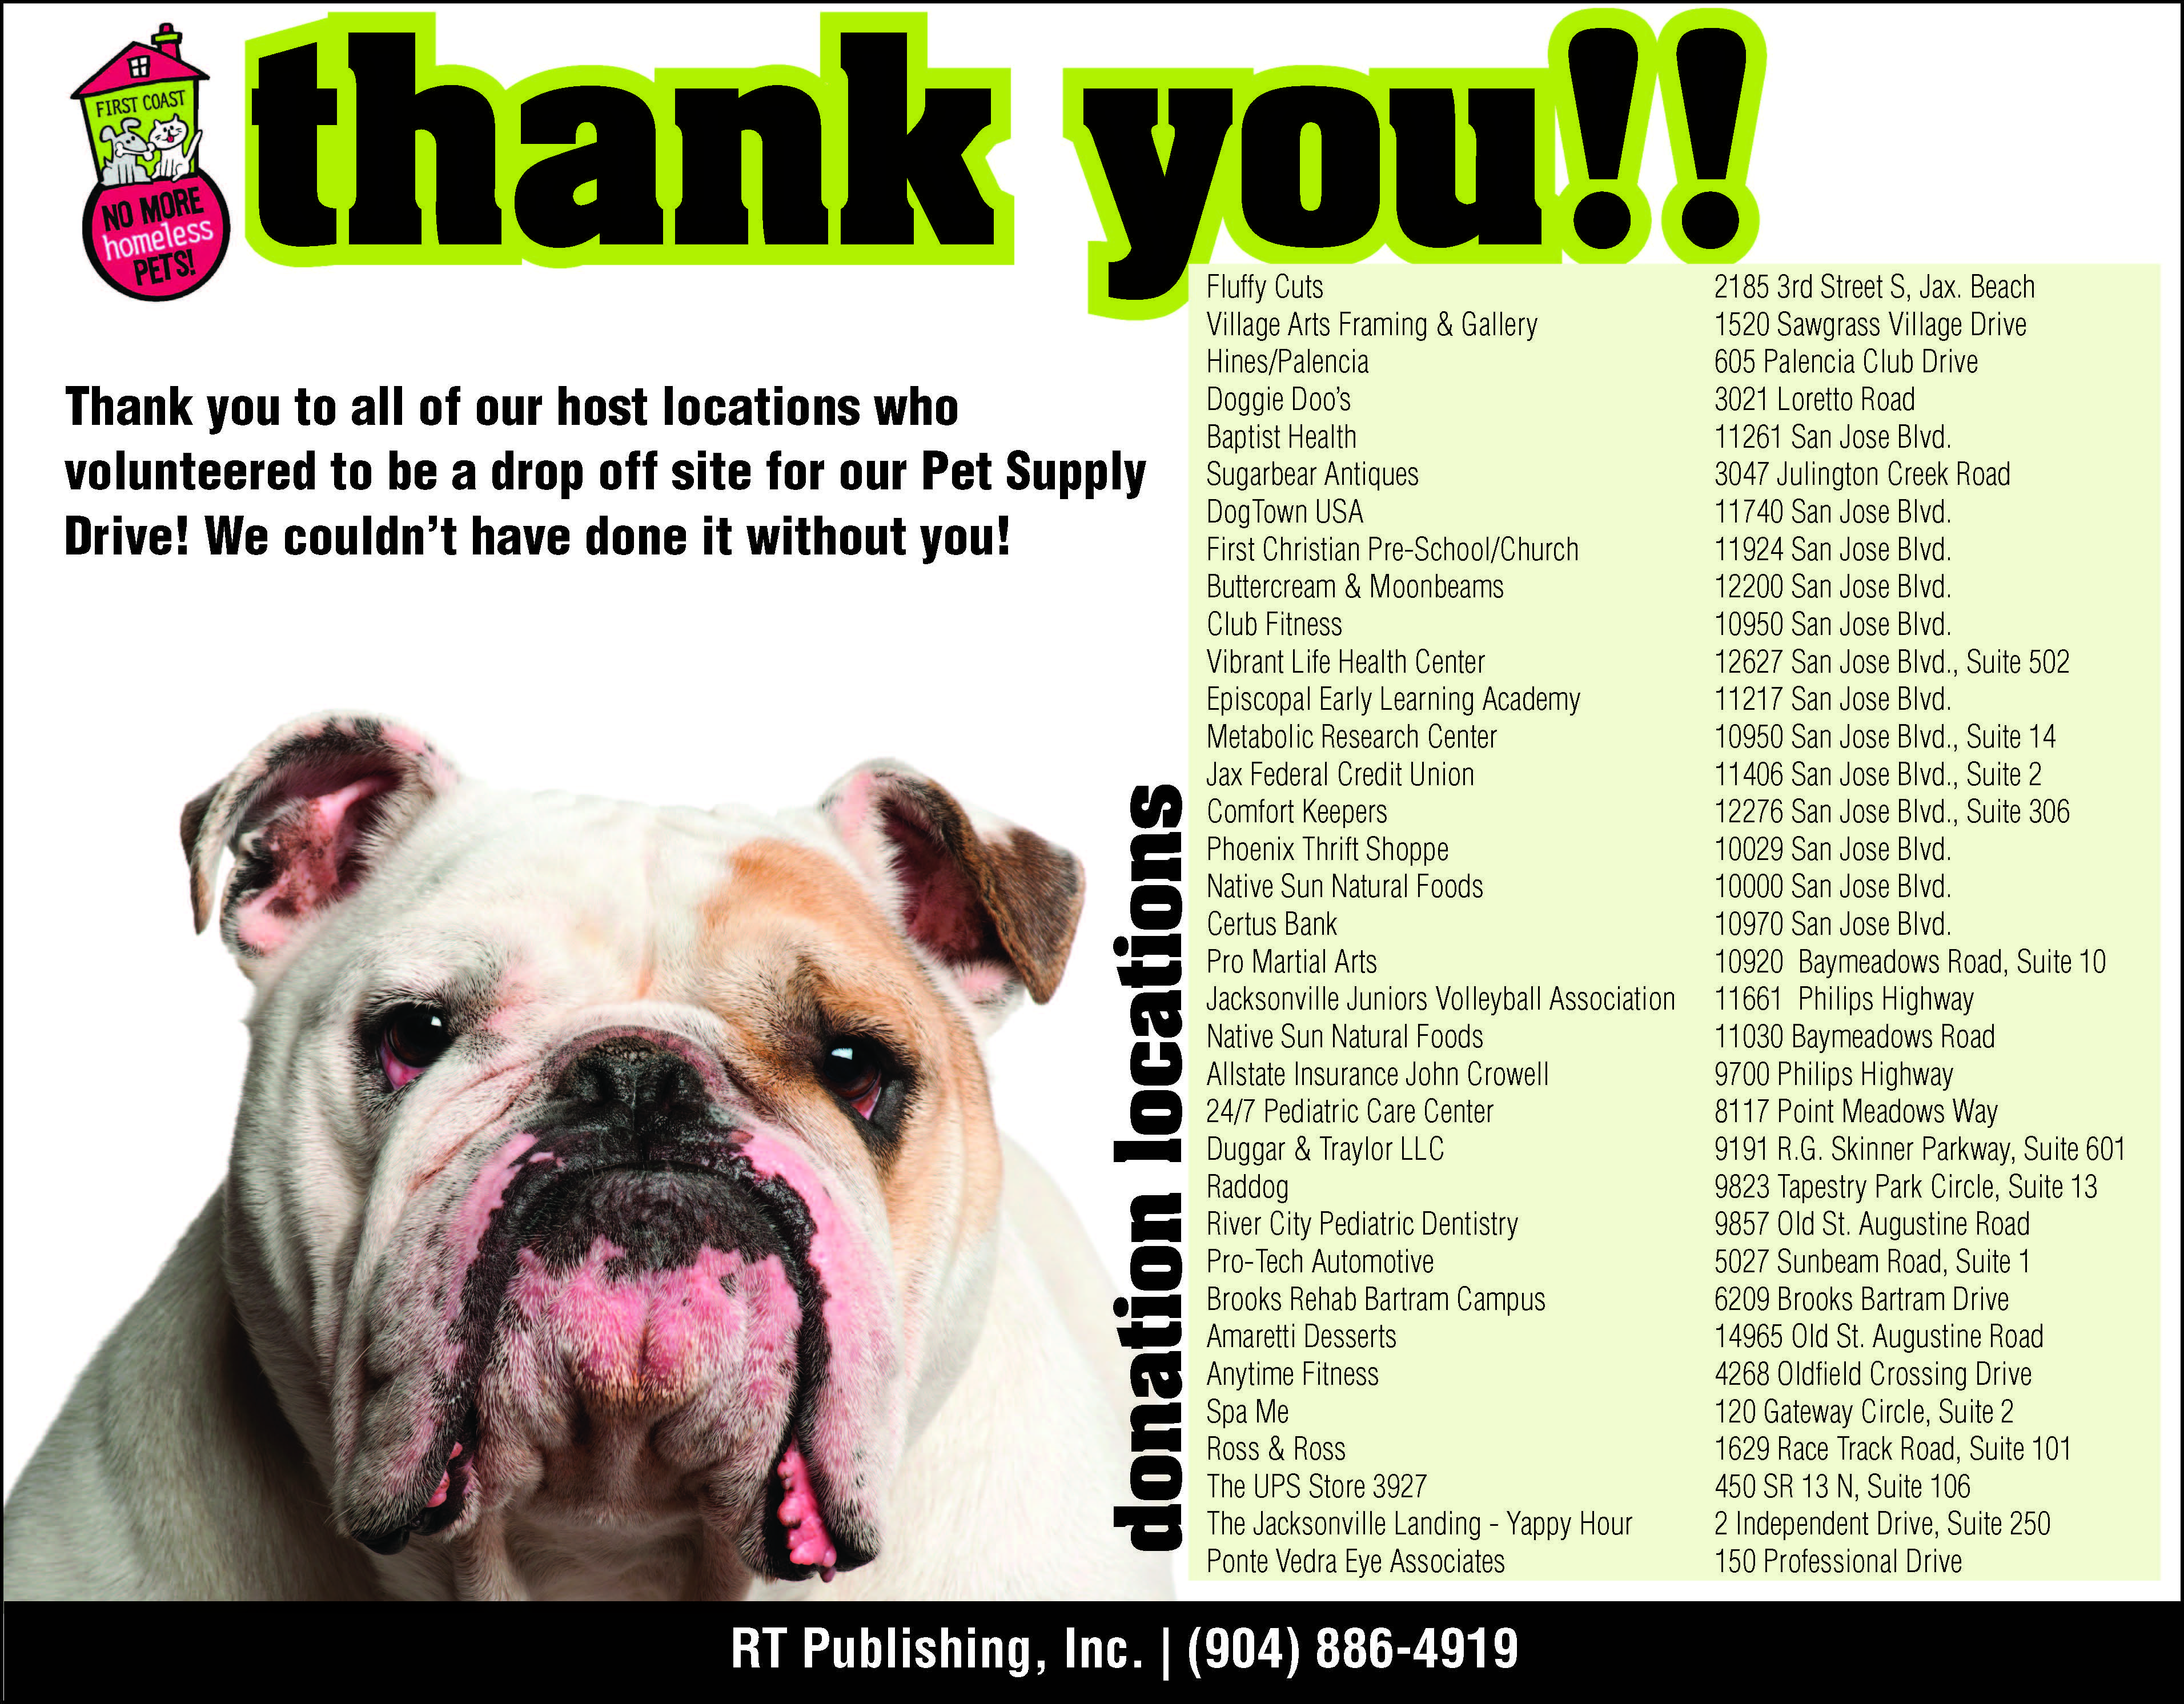 Thank You To All Of Our Supporters Who Donated Supplies